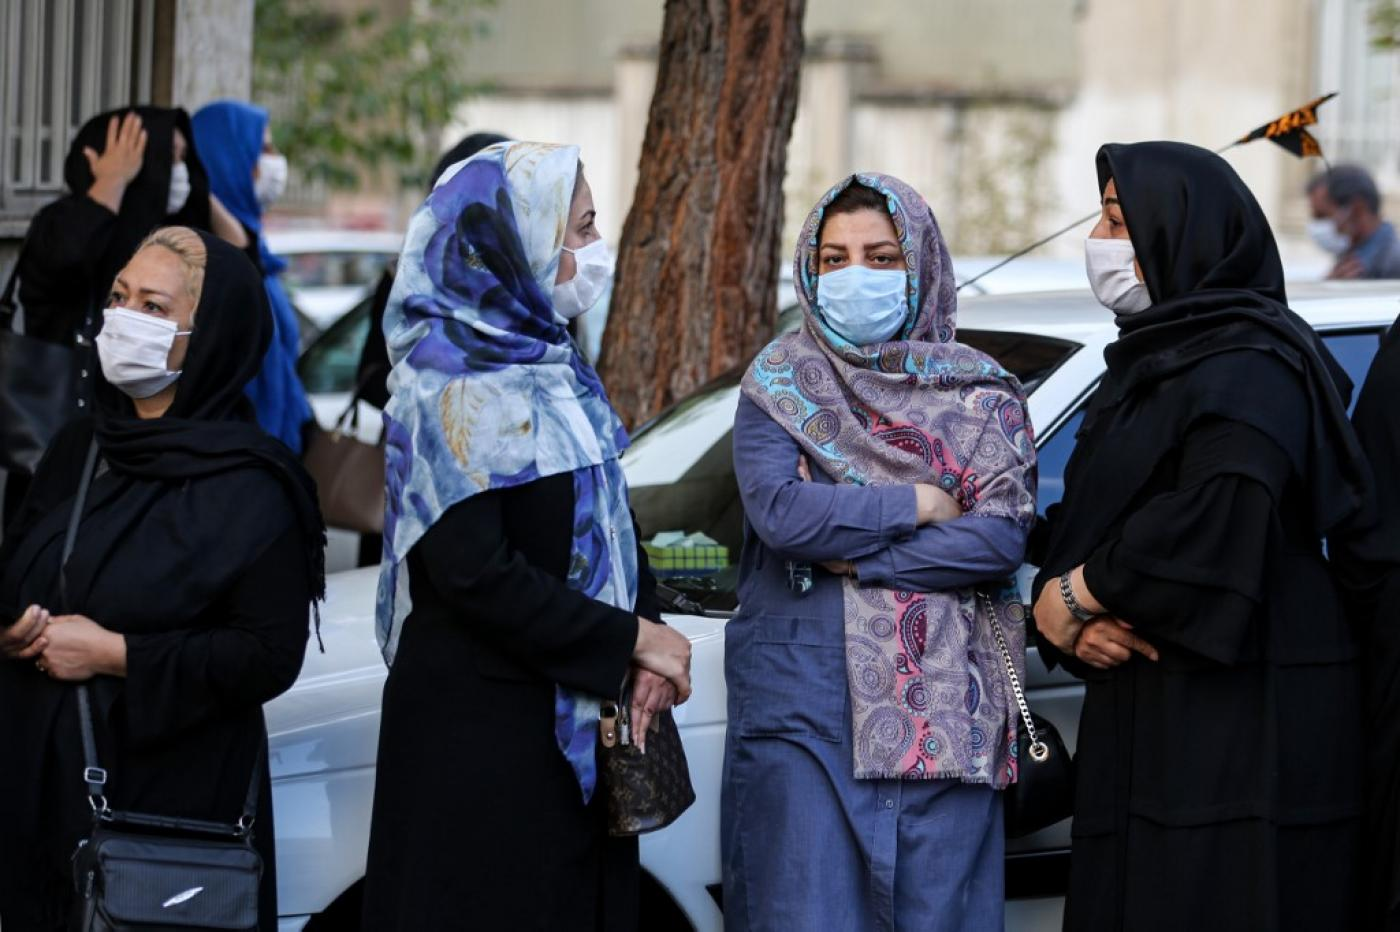 The Islamic Republic has faced the worst outbreak of Covid-19 in the Middle East.